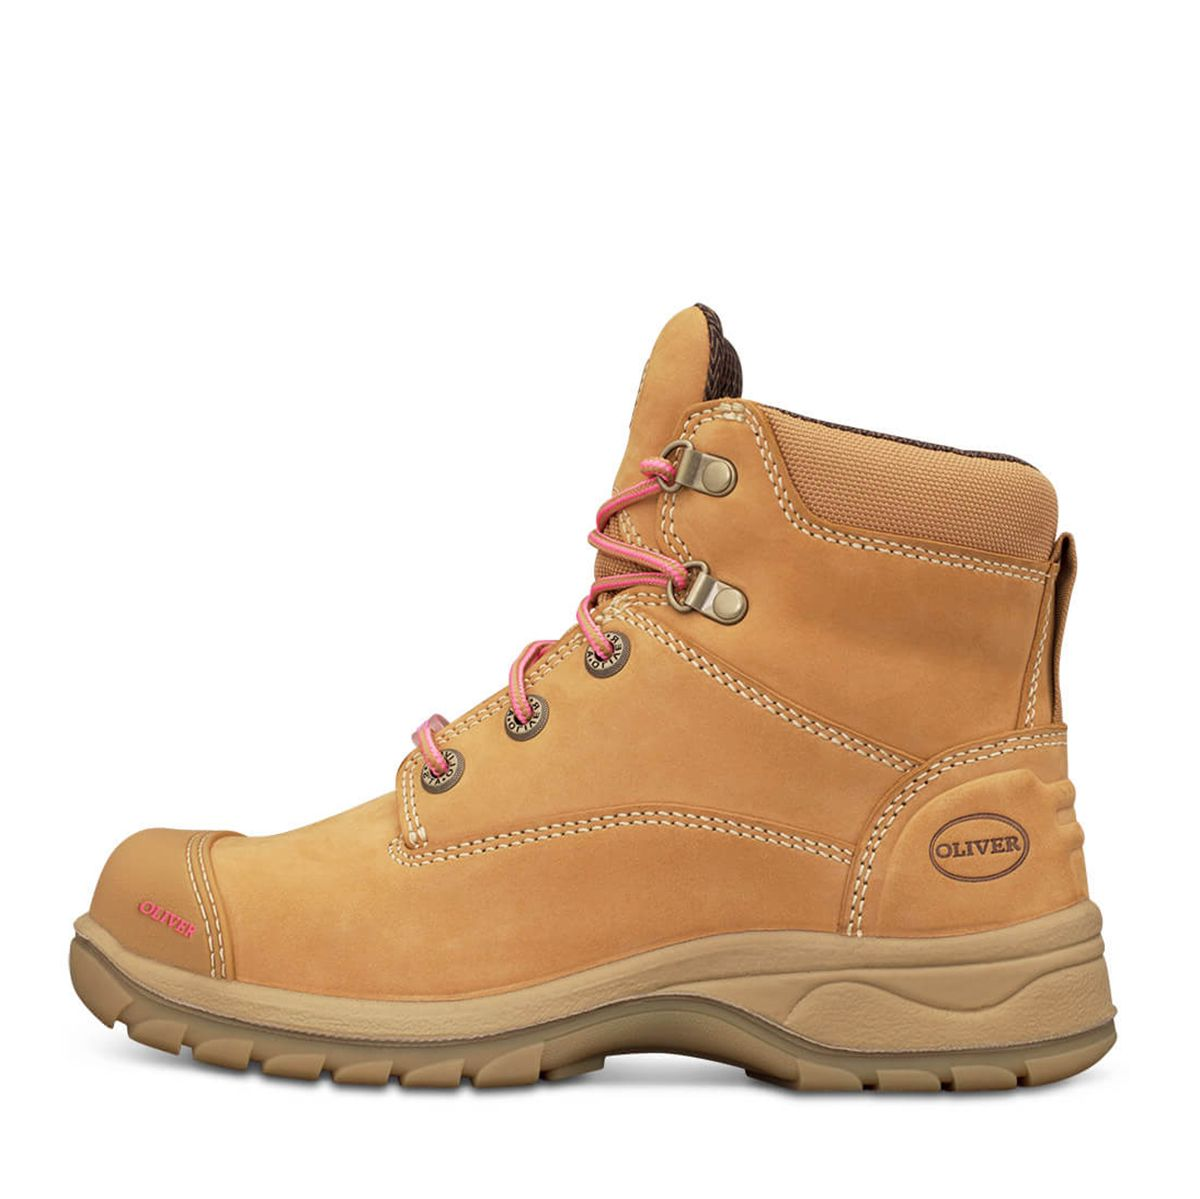 4e56be7719c 49432Z Oliver Ladies Zip Sided Lace Up Steel Toe Bump Cap - Safety Boot